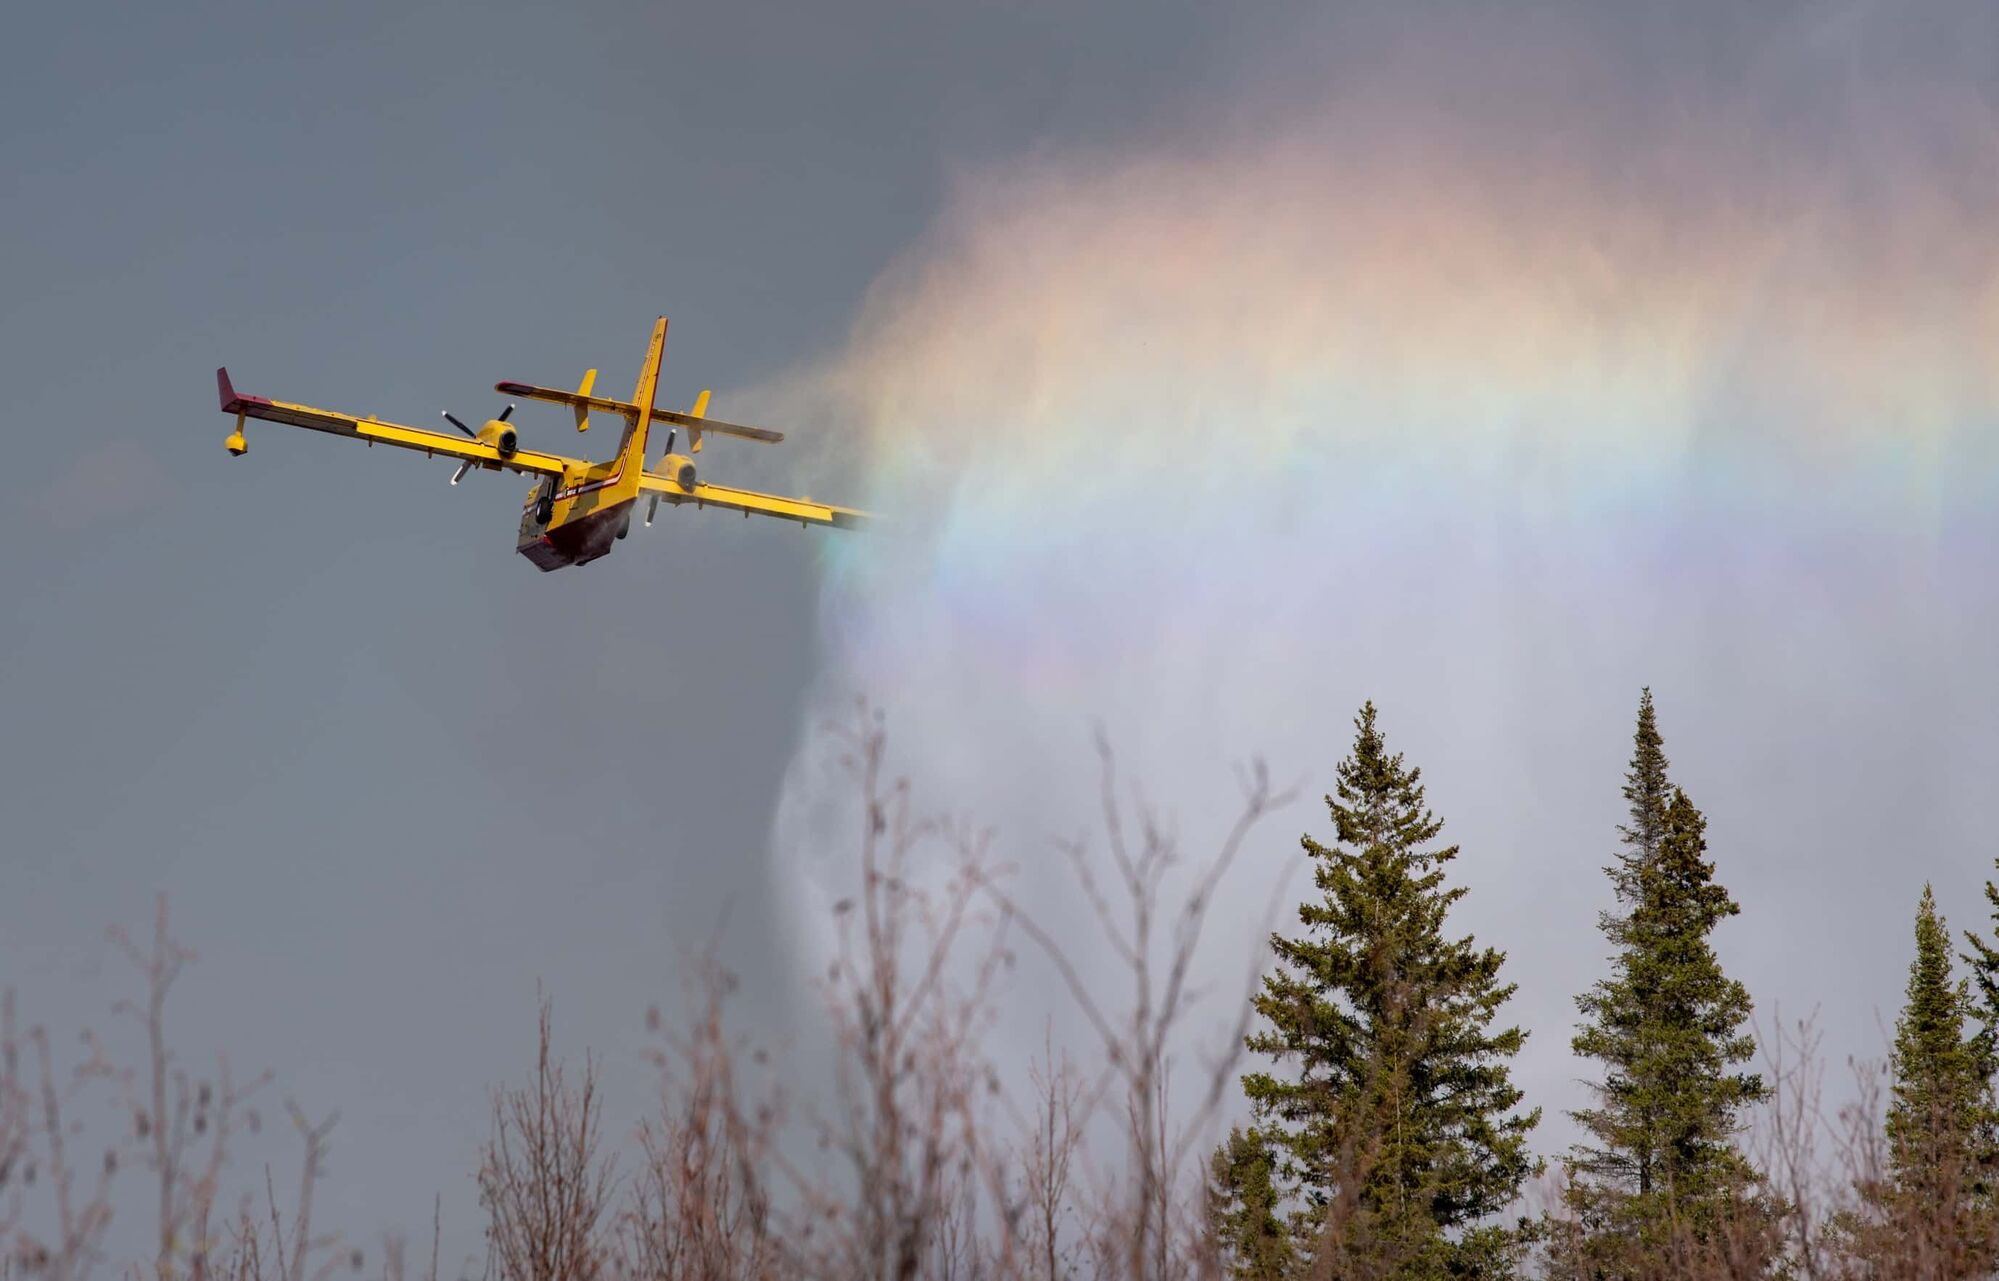 """An abnormally dry spring created dangerous conditions for wildfires in the province. Southern regions were """"severely dry to extremely dry"""" in March, April and May, according to the Manitoba Drought Monitor. (Alex Lupul / Winnipeg Free Press file)"""